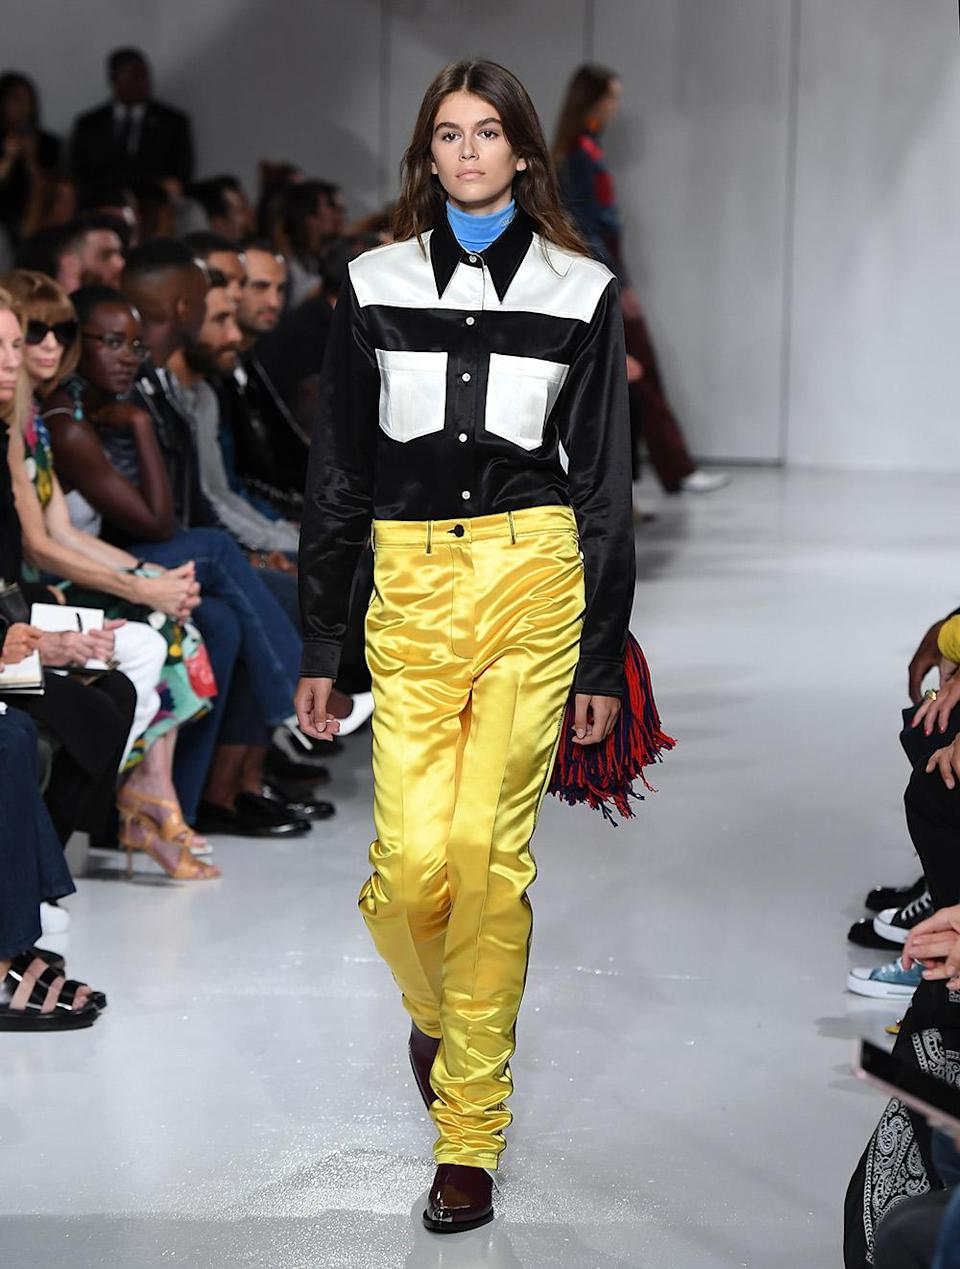 Model Kaia Gerber walks the runway for the Calvin Klein Collection fashion show during New York Fashion Week on Sept. 7, 2017 in New York City. (Photo: Getty Images)